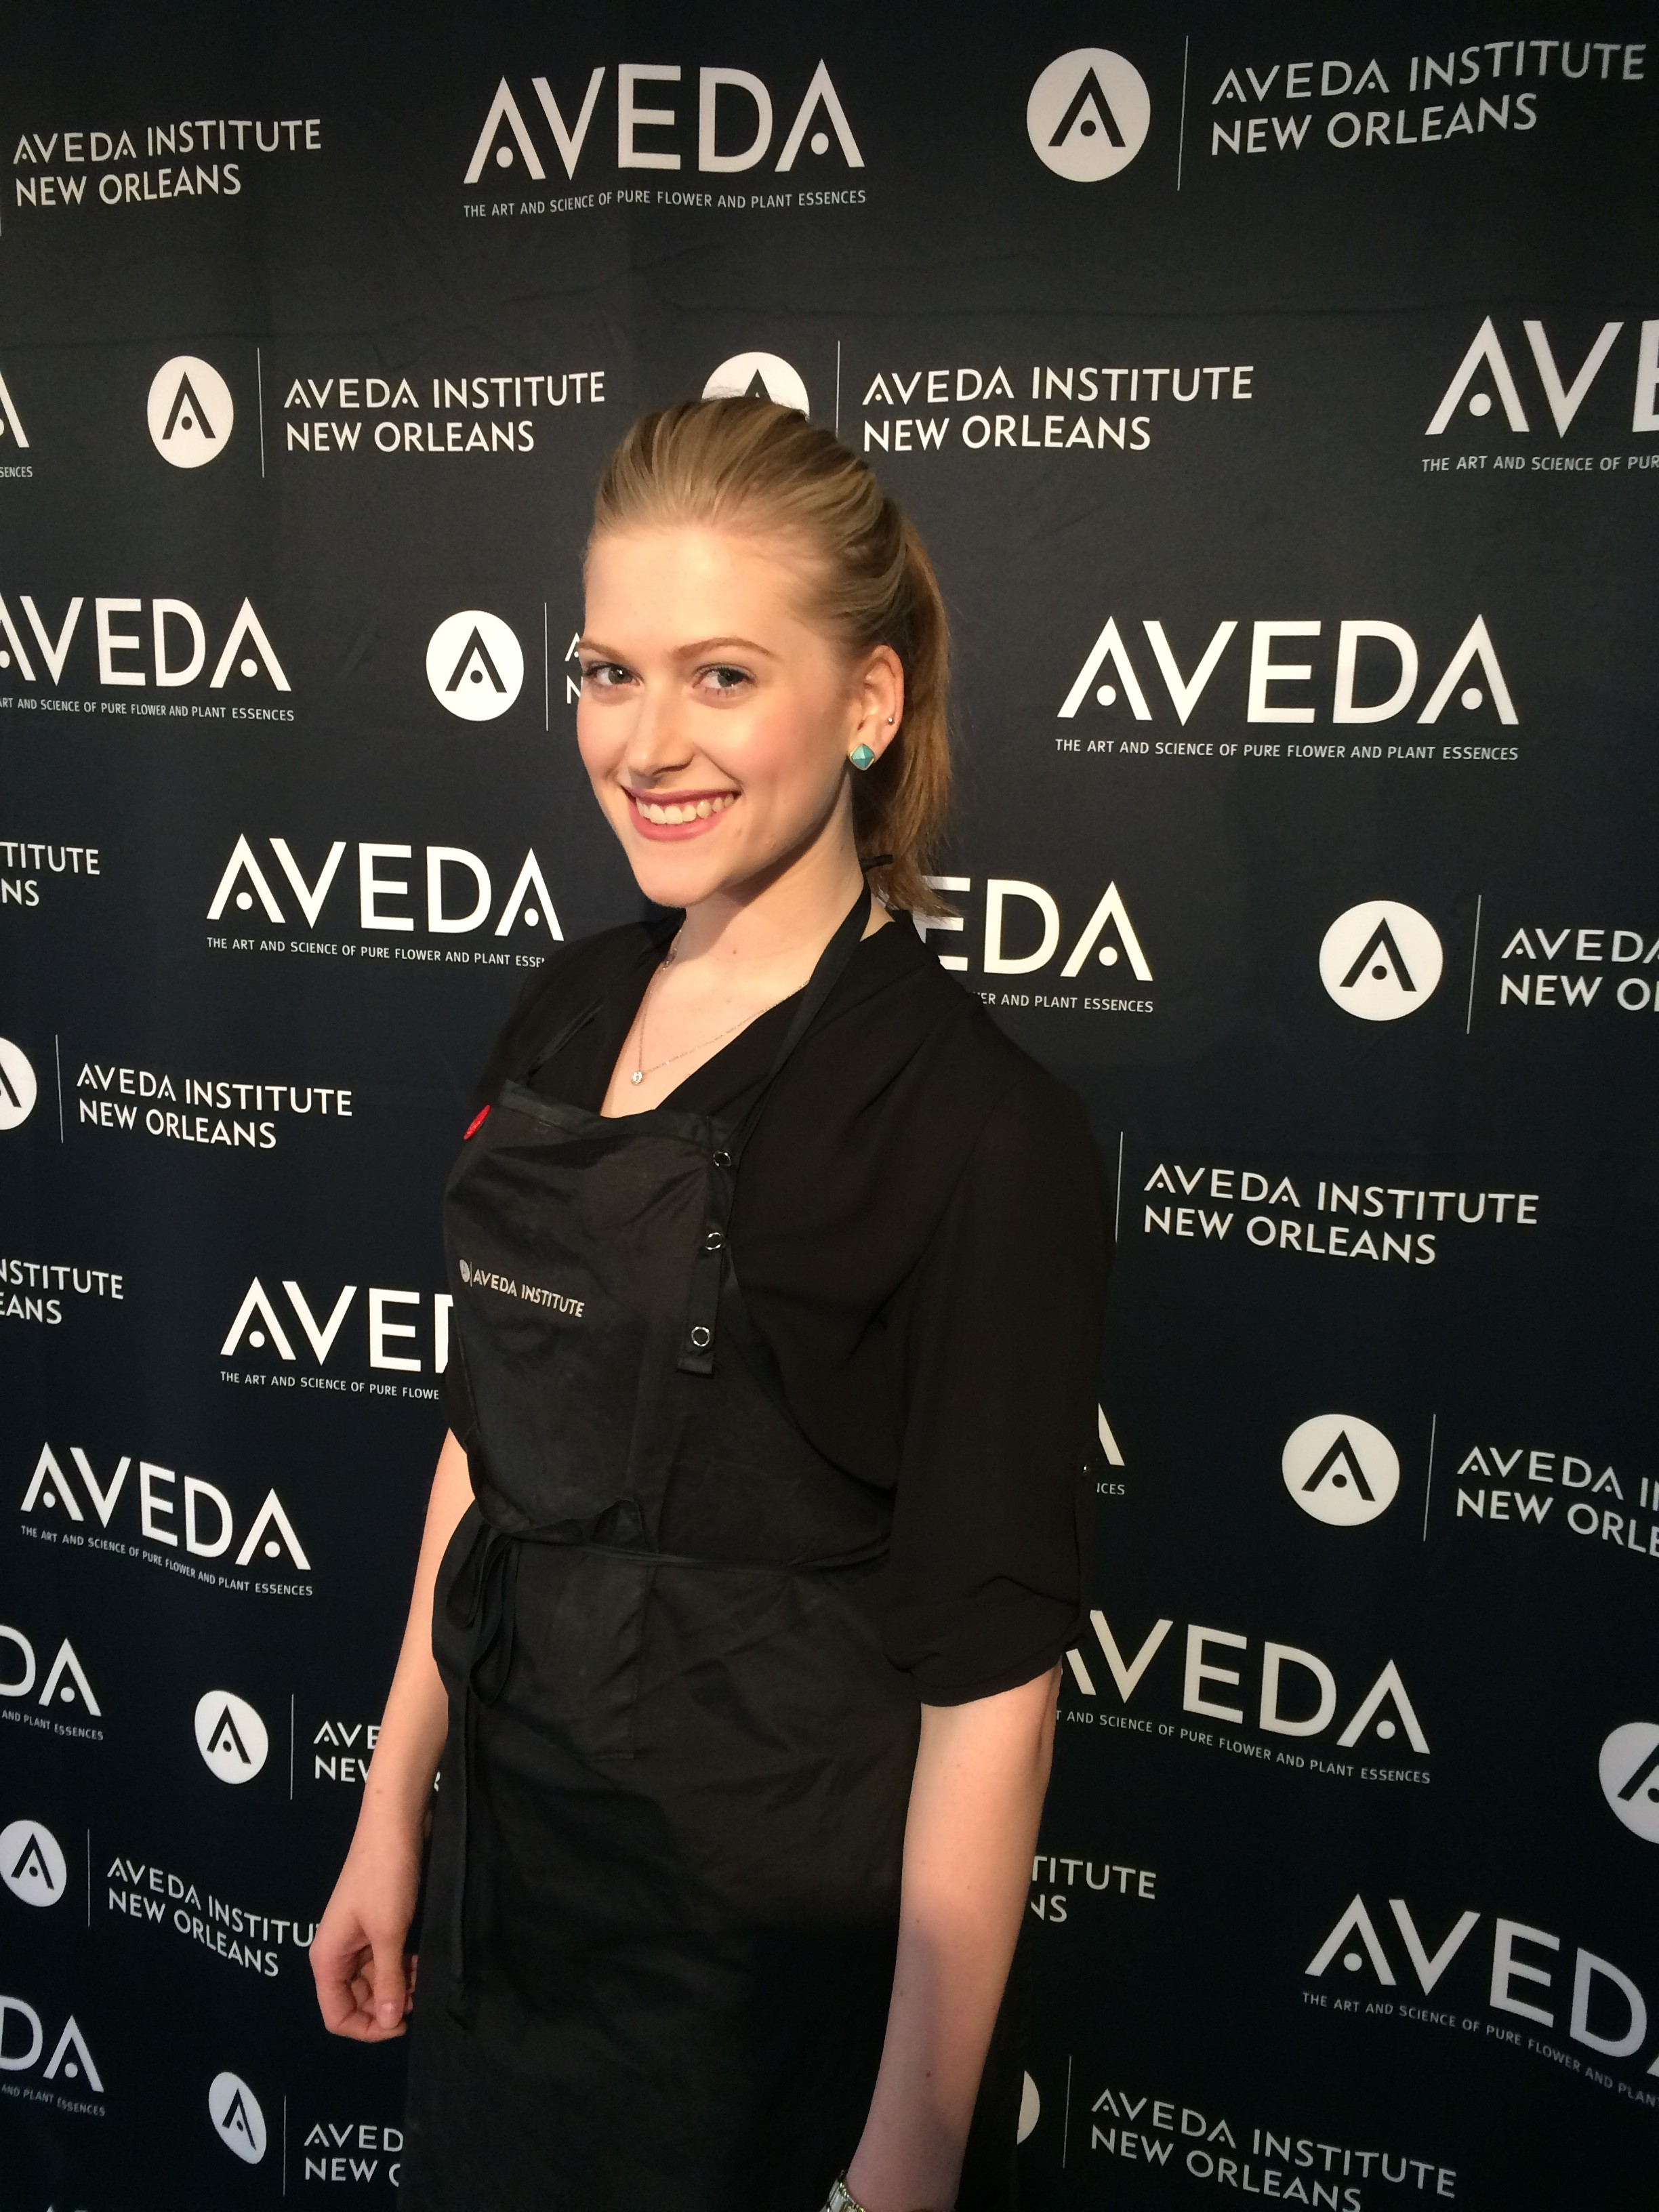 Image of Aveda Beauty School Student